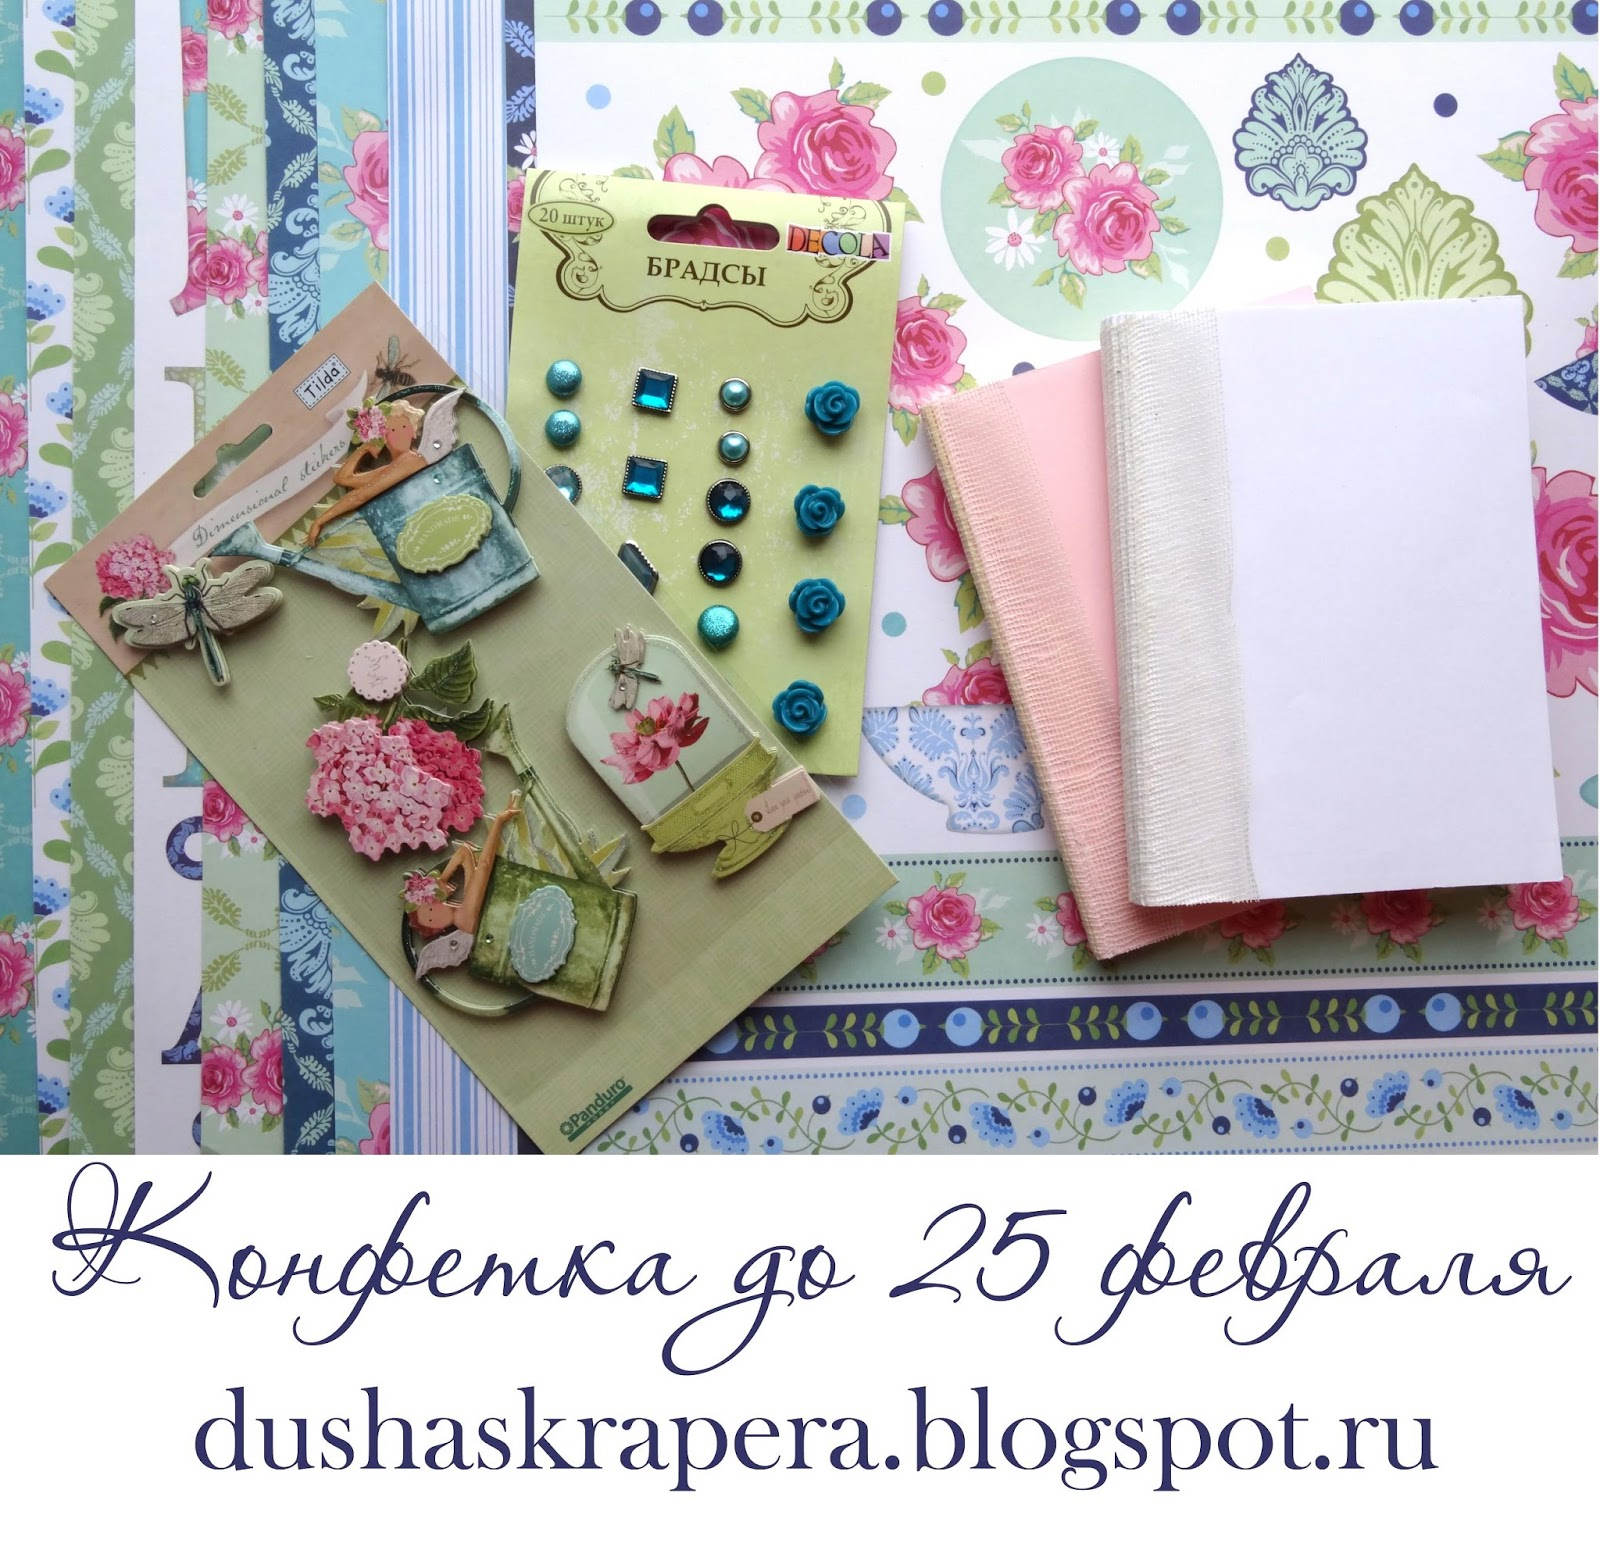 http://dushaskrapera.blogspot.ru/2015/02/blog-post.html